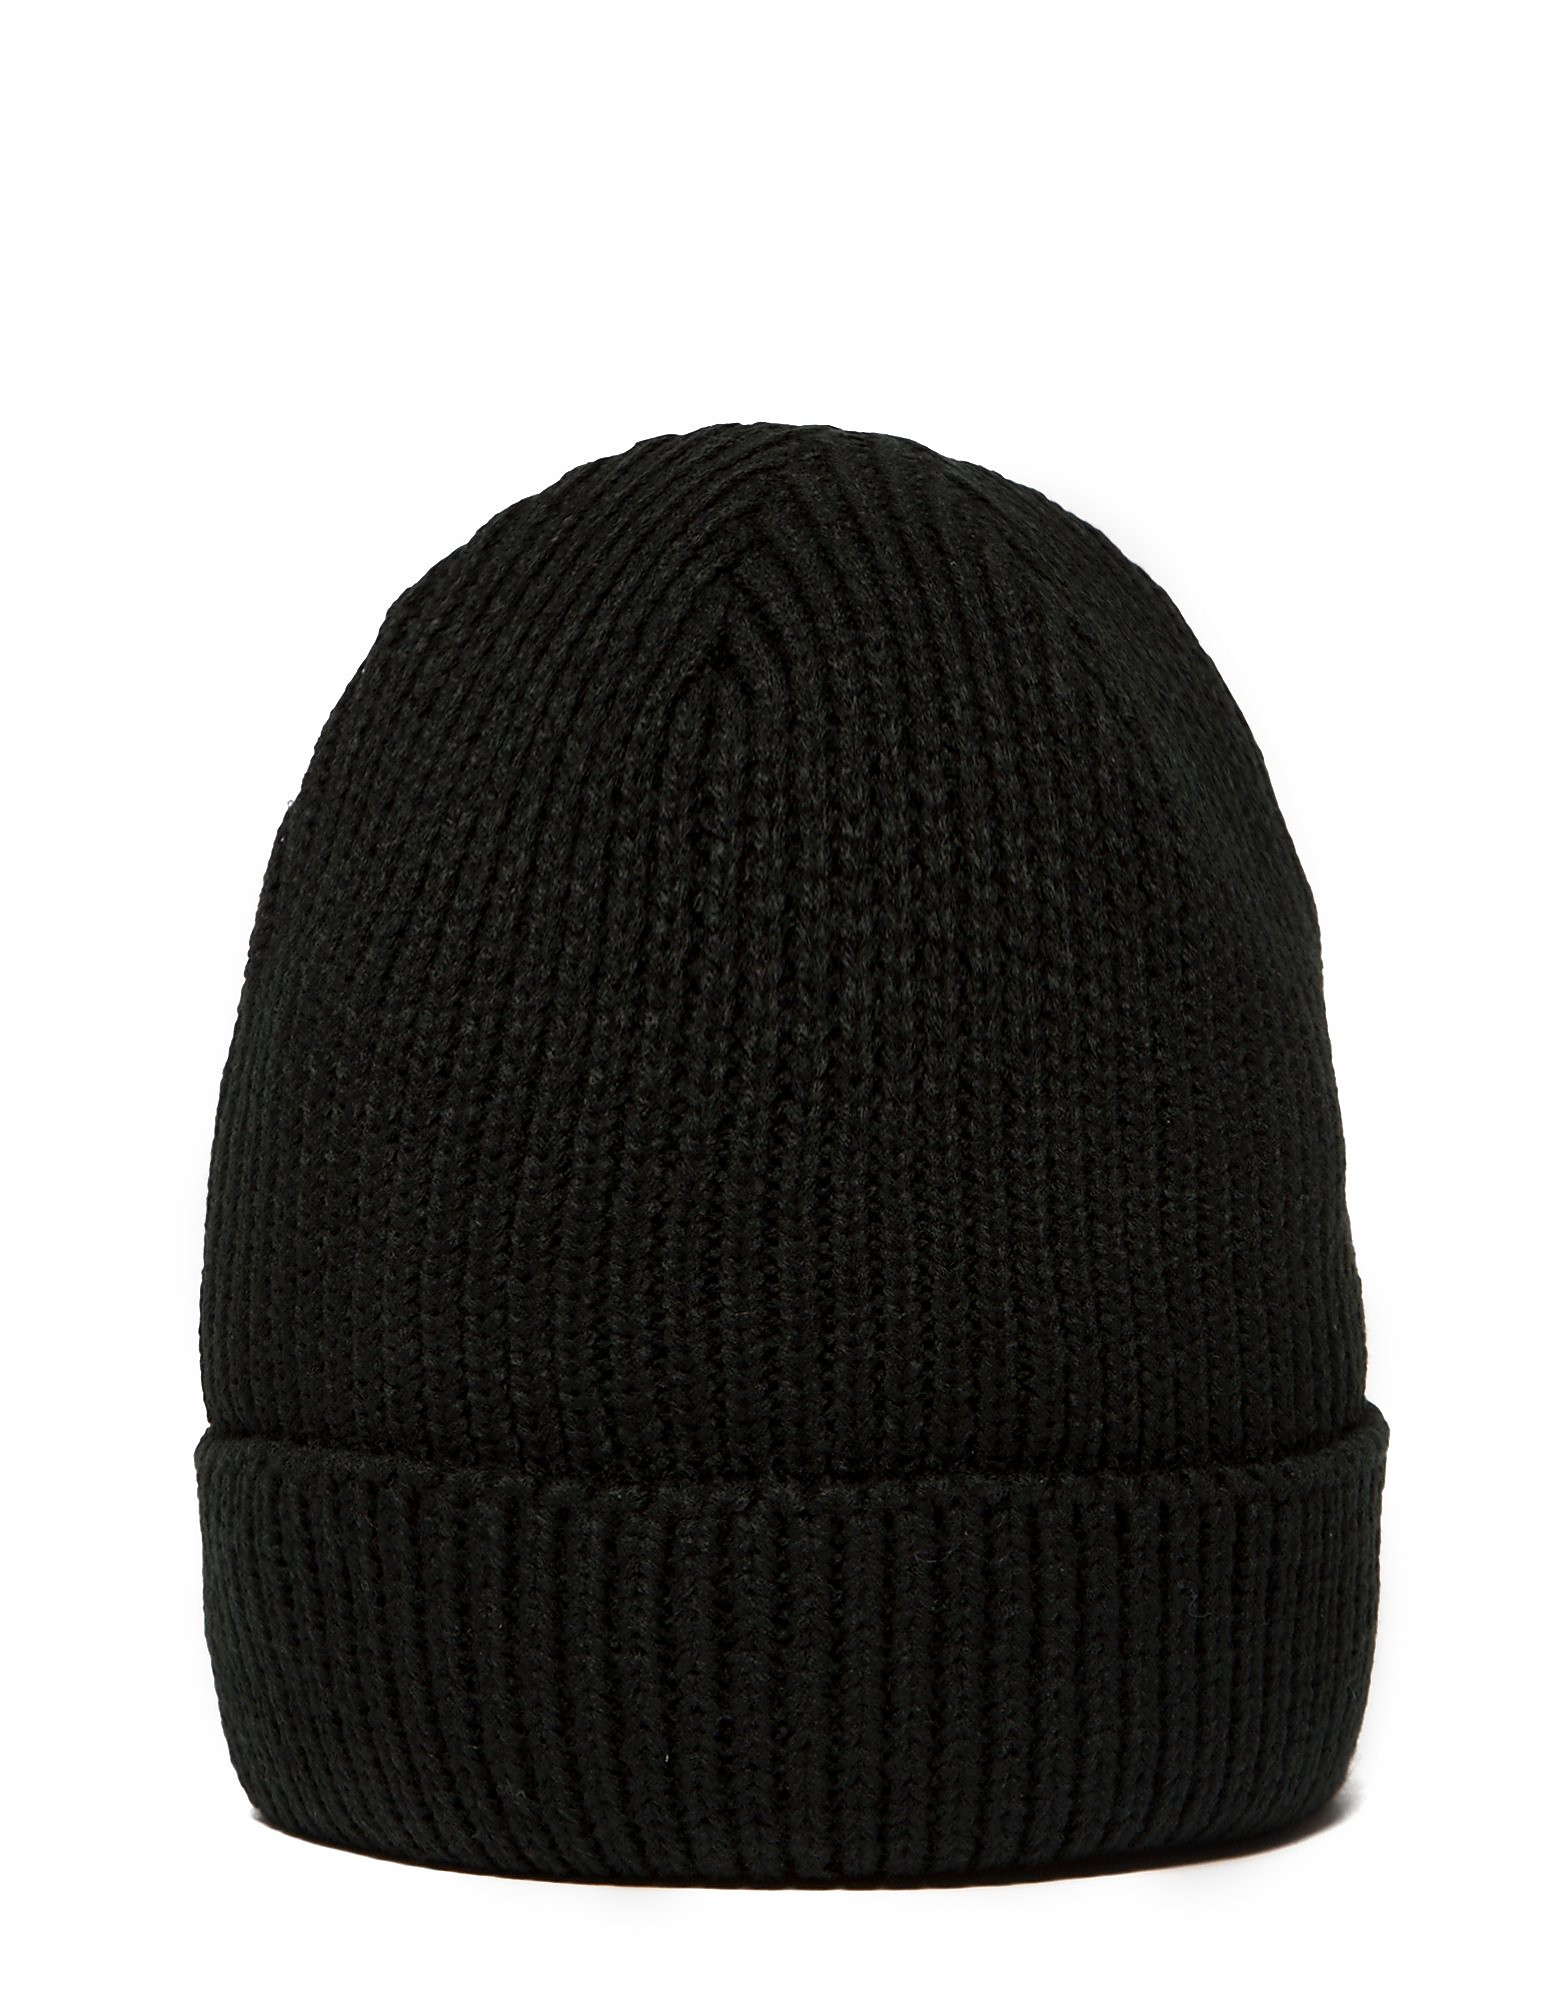 Duffer of St George Anchor 3 Beanie Hat